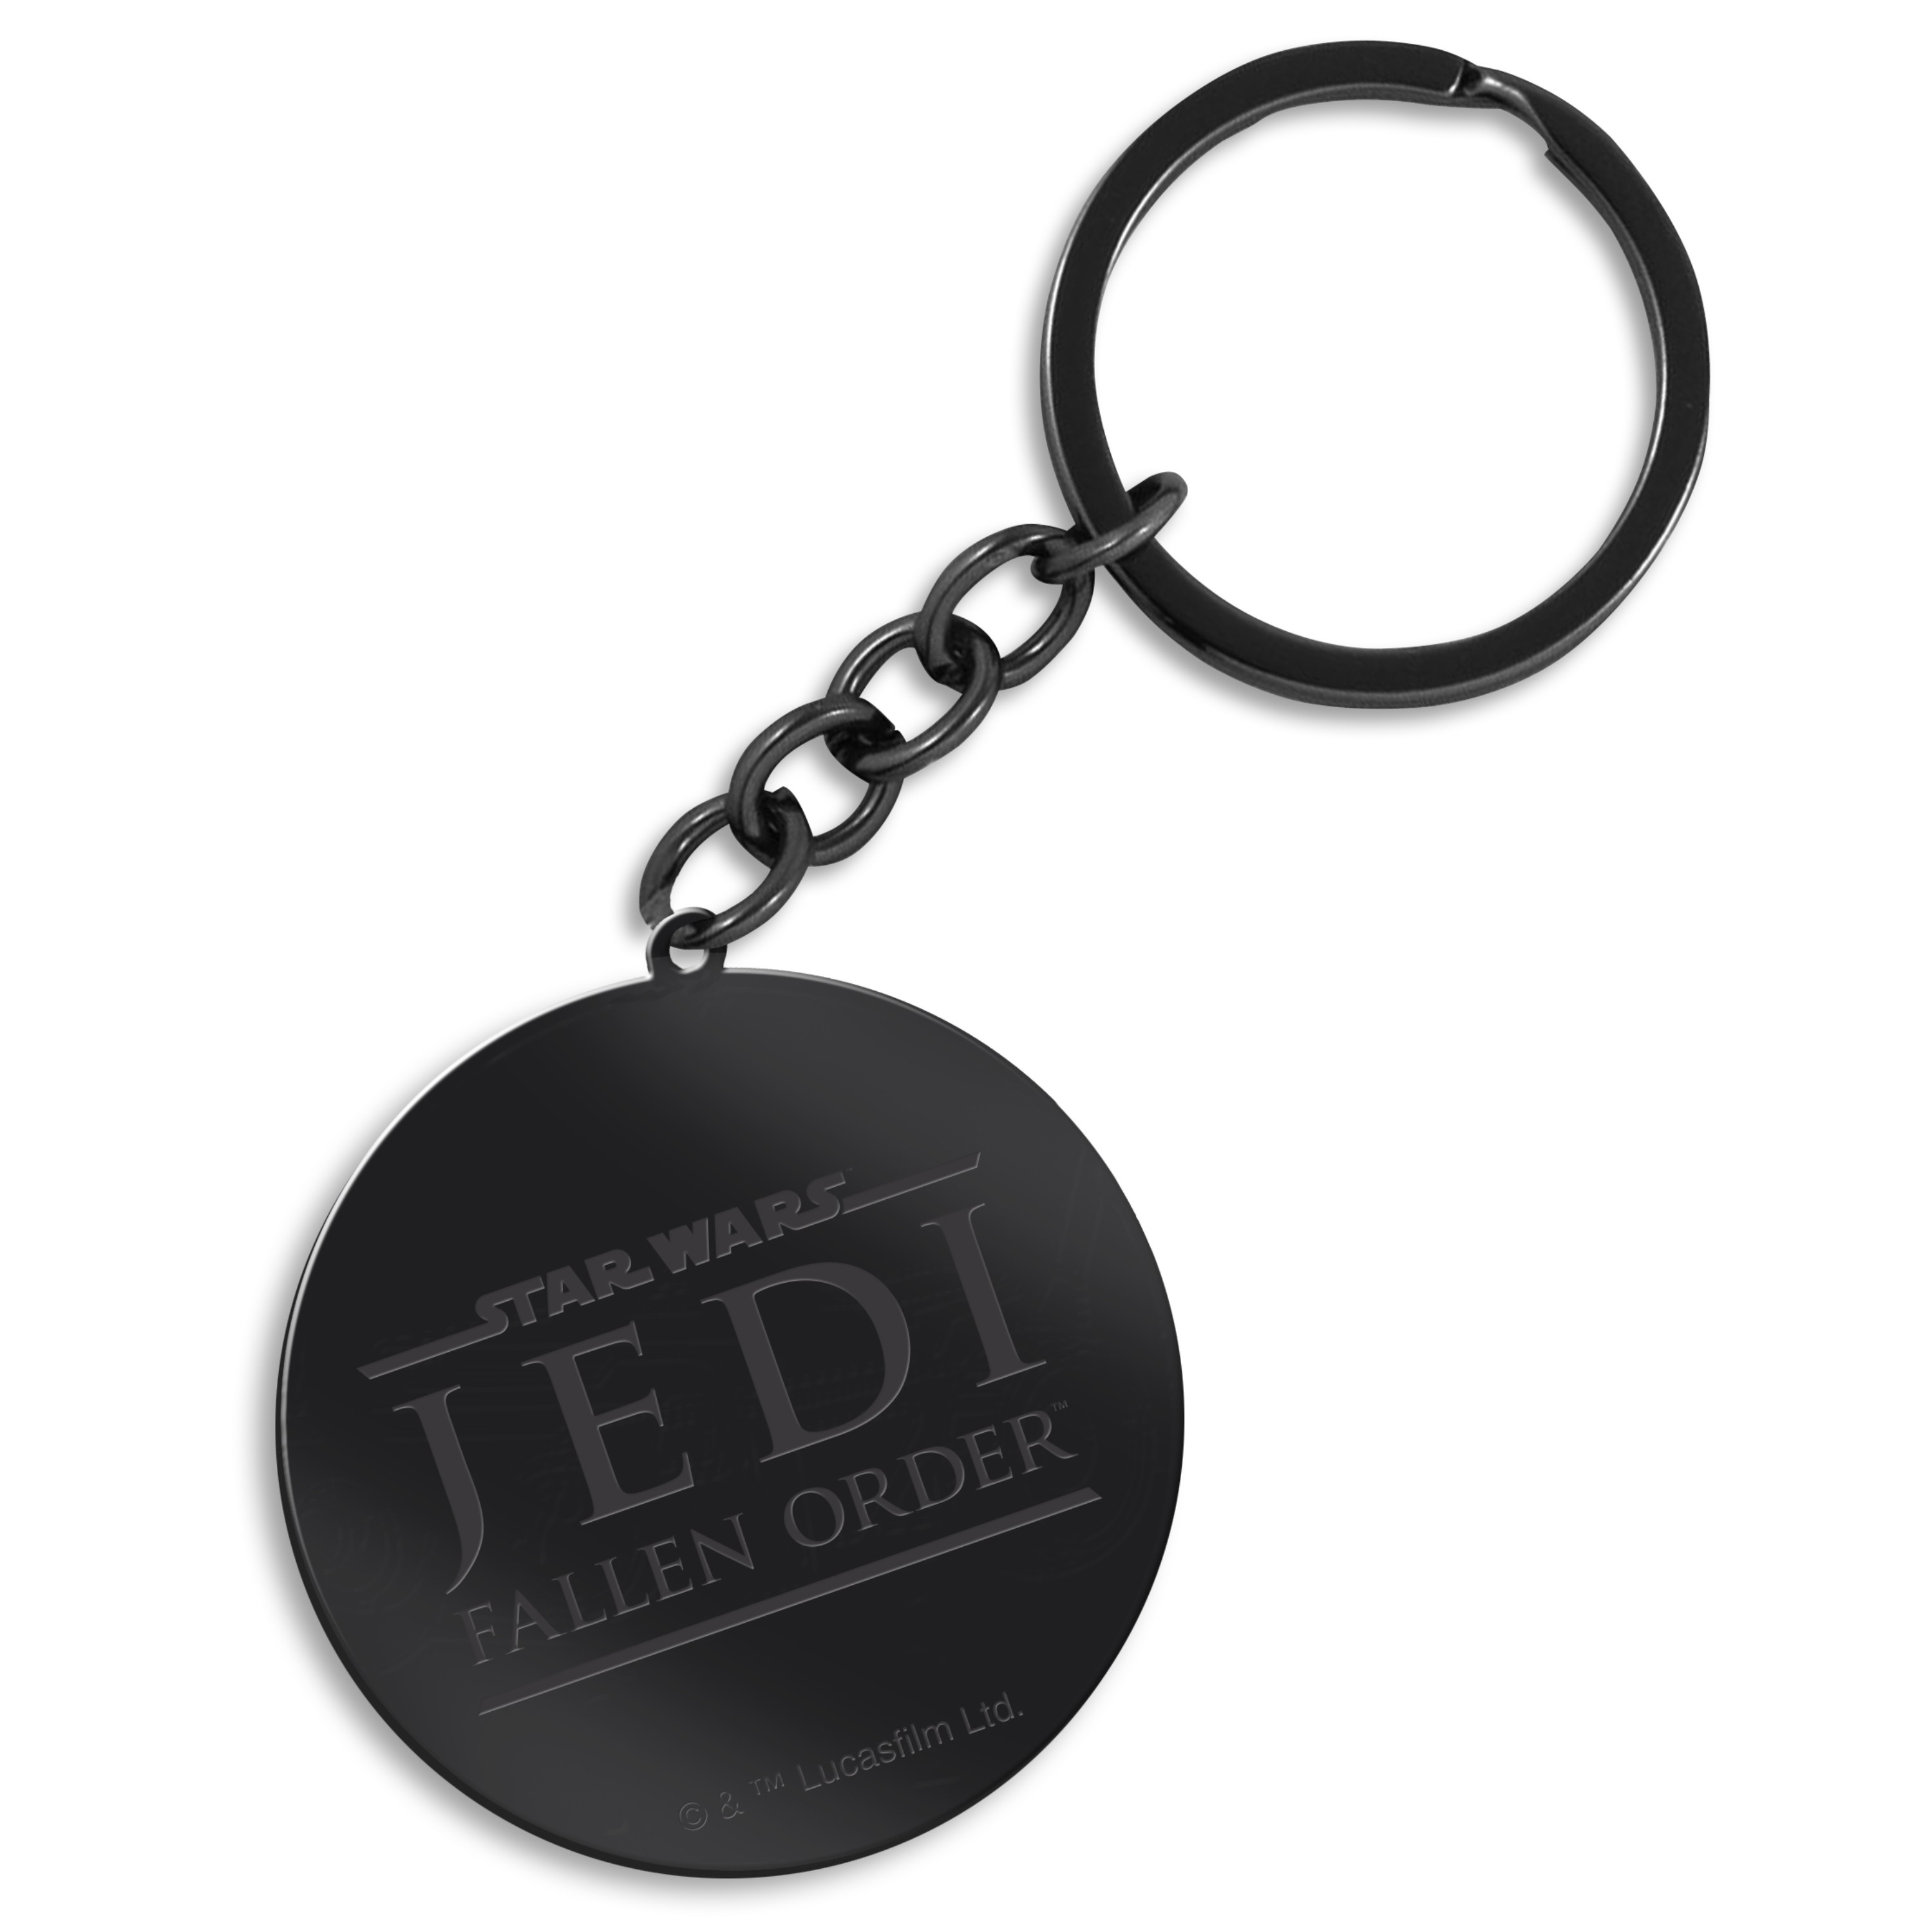 Star Wars Key Chain with a Fallen Order Jedi Logo, Image 1